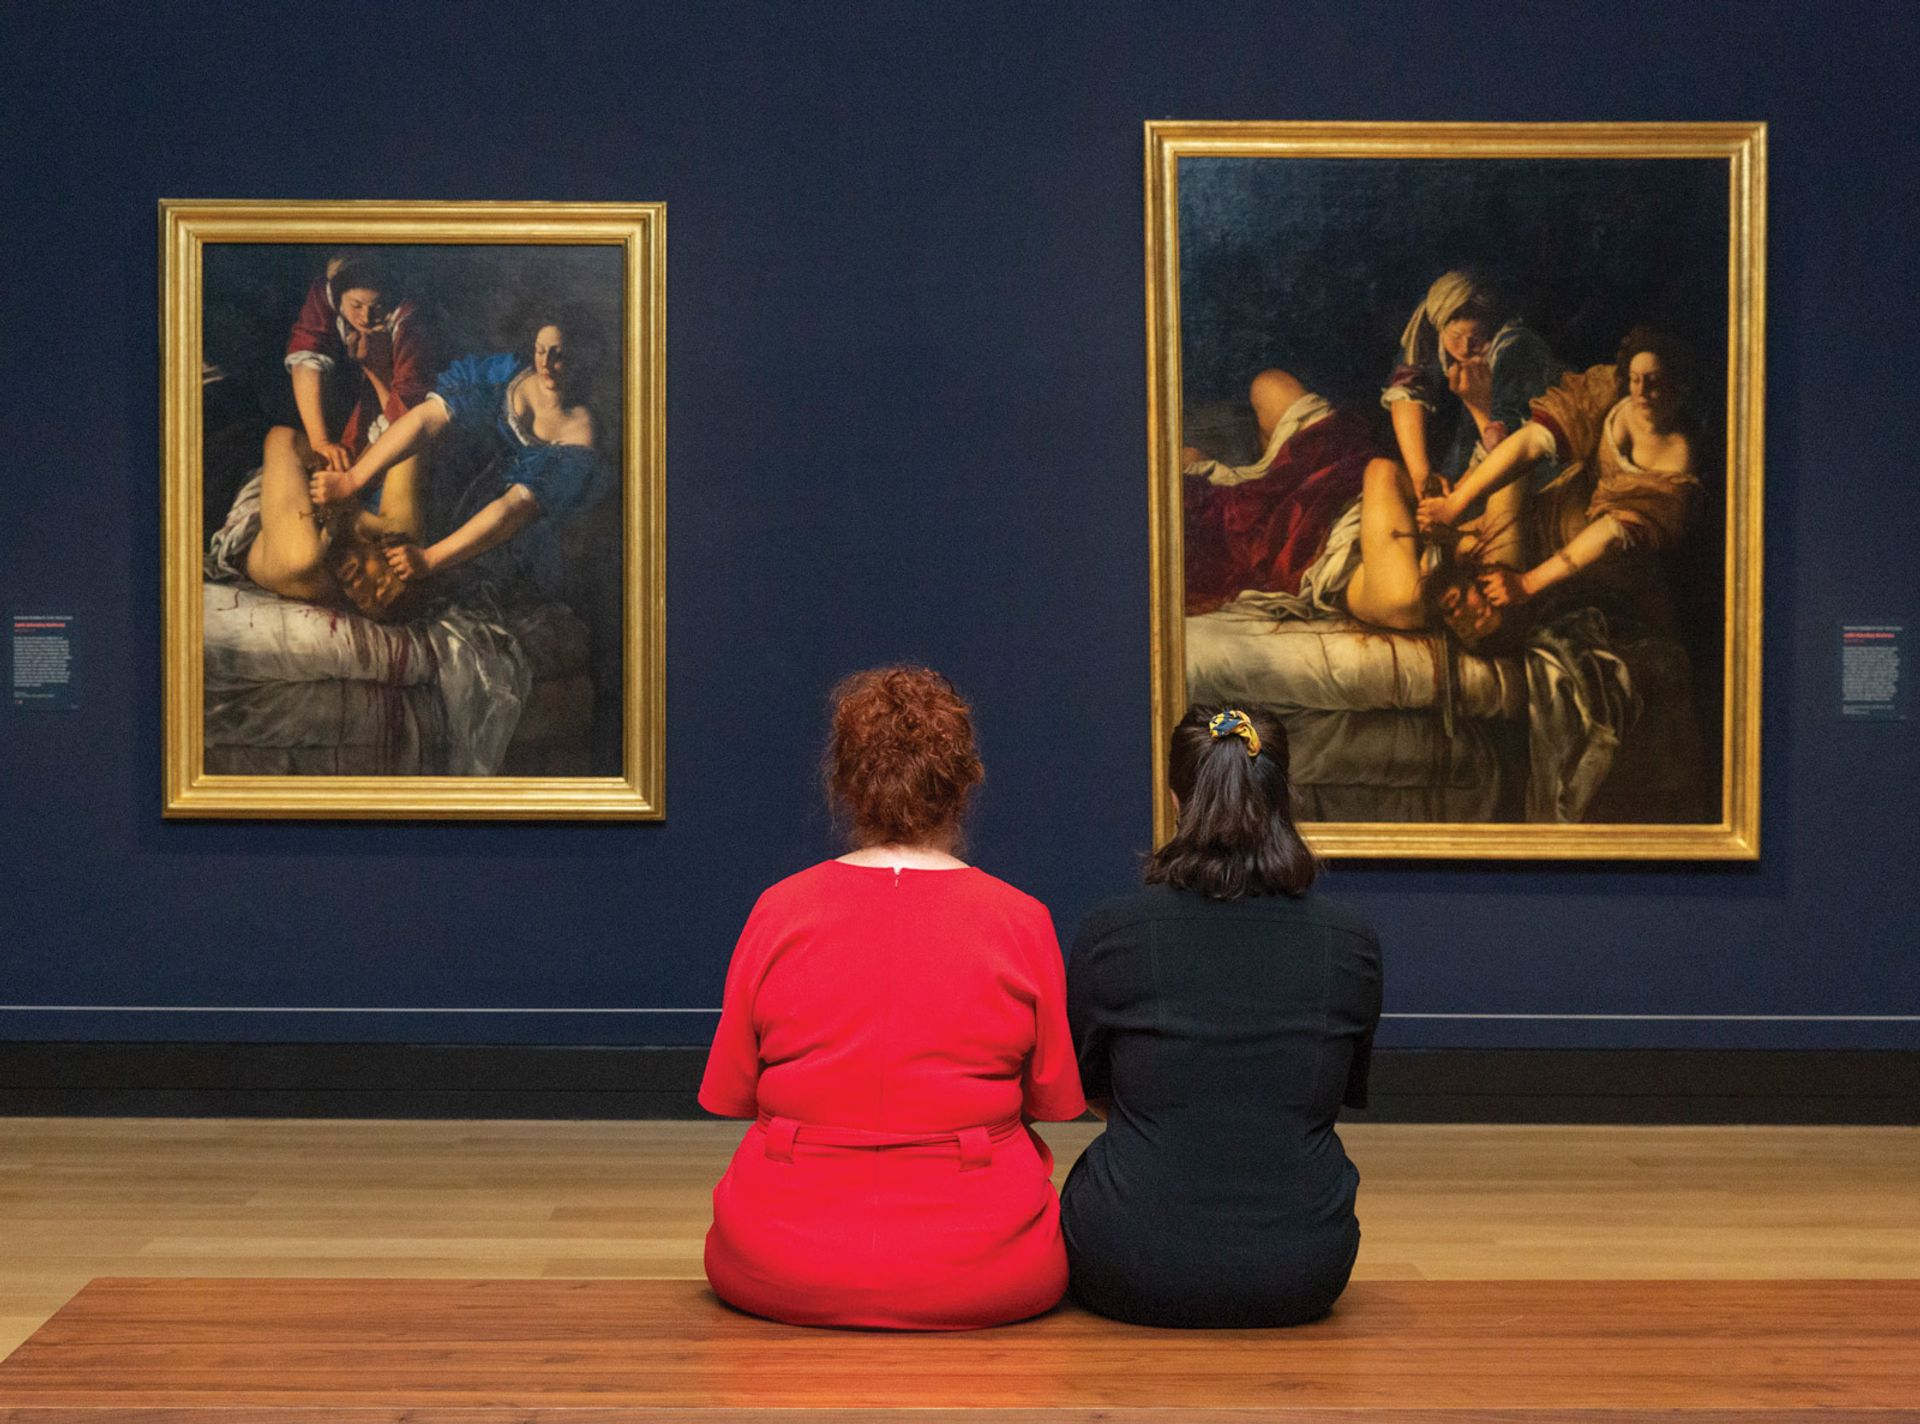 The two images of Judith beheading Holofernes sit side by side in the exhibition The National Gallery, London